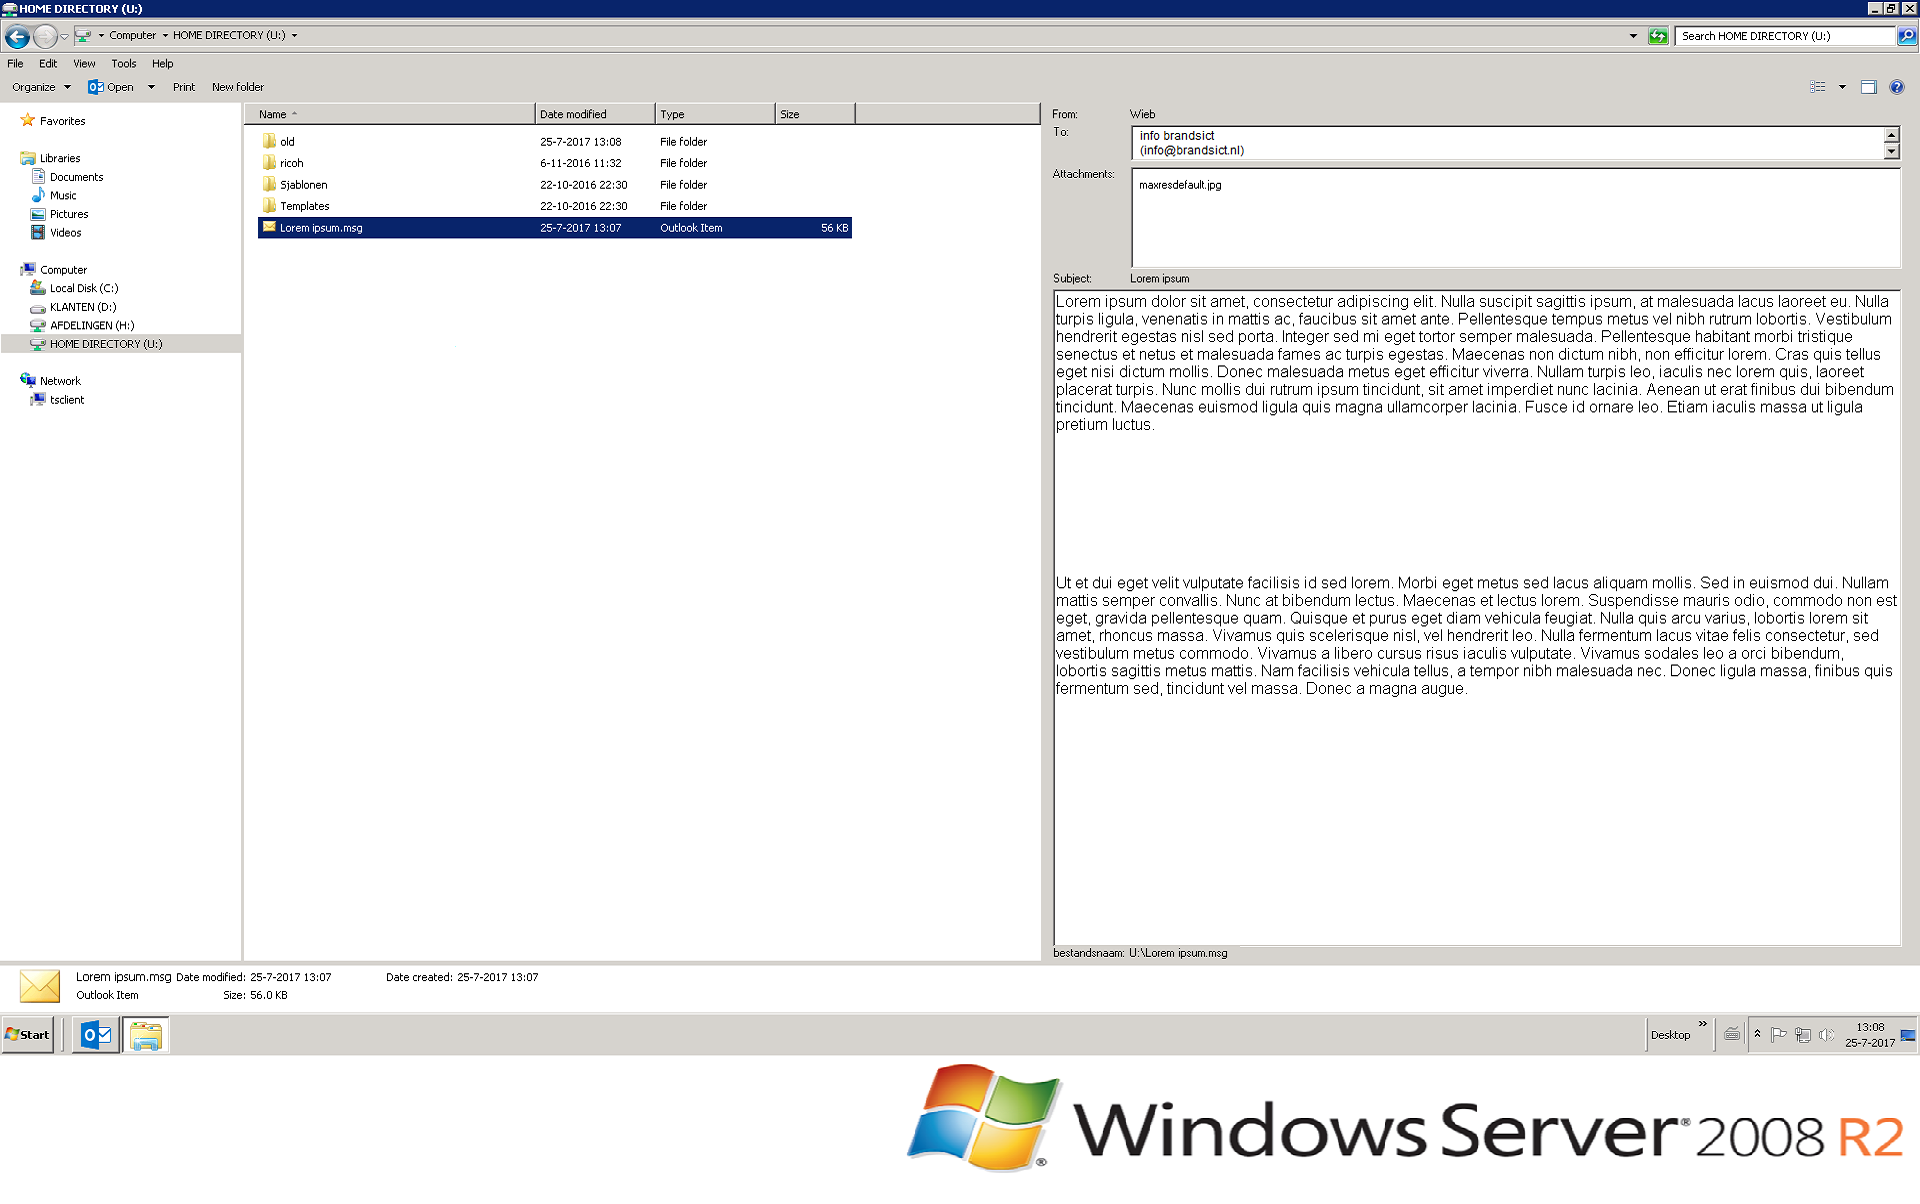 64 bit .msg preview pane for windows explorer